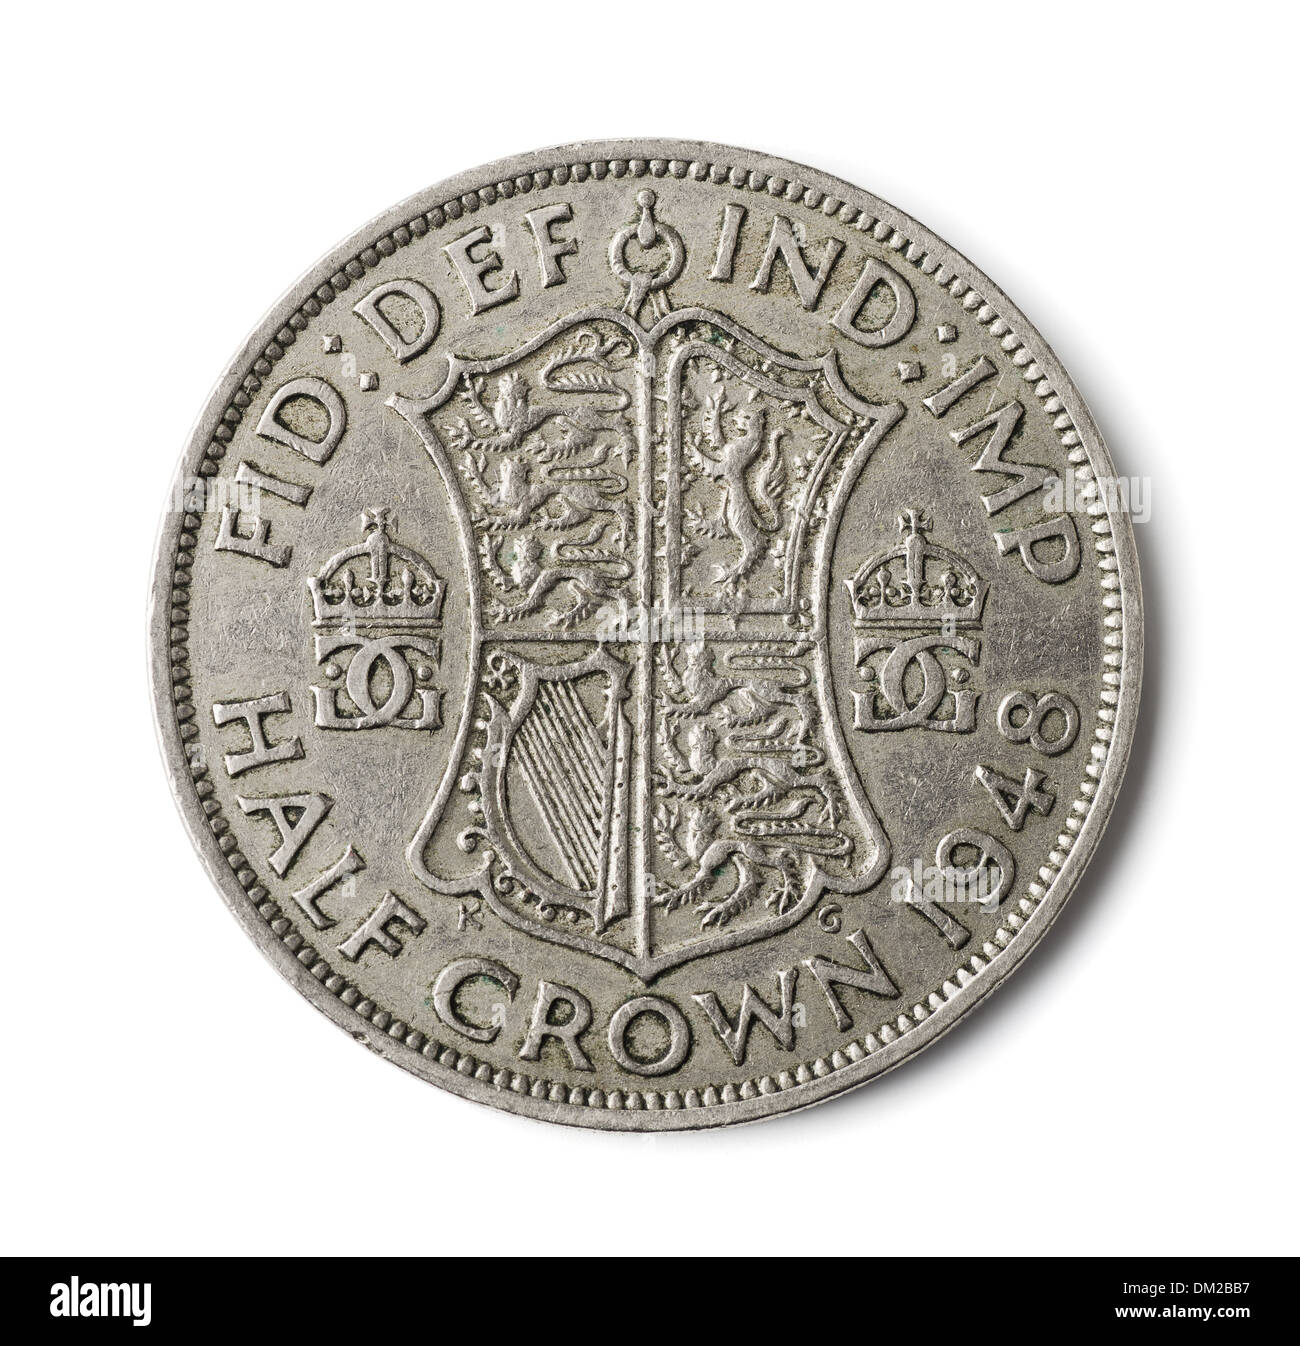 Old British half crown coin isolated on white - Stock Image